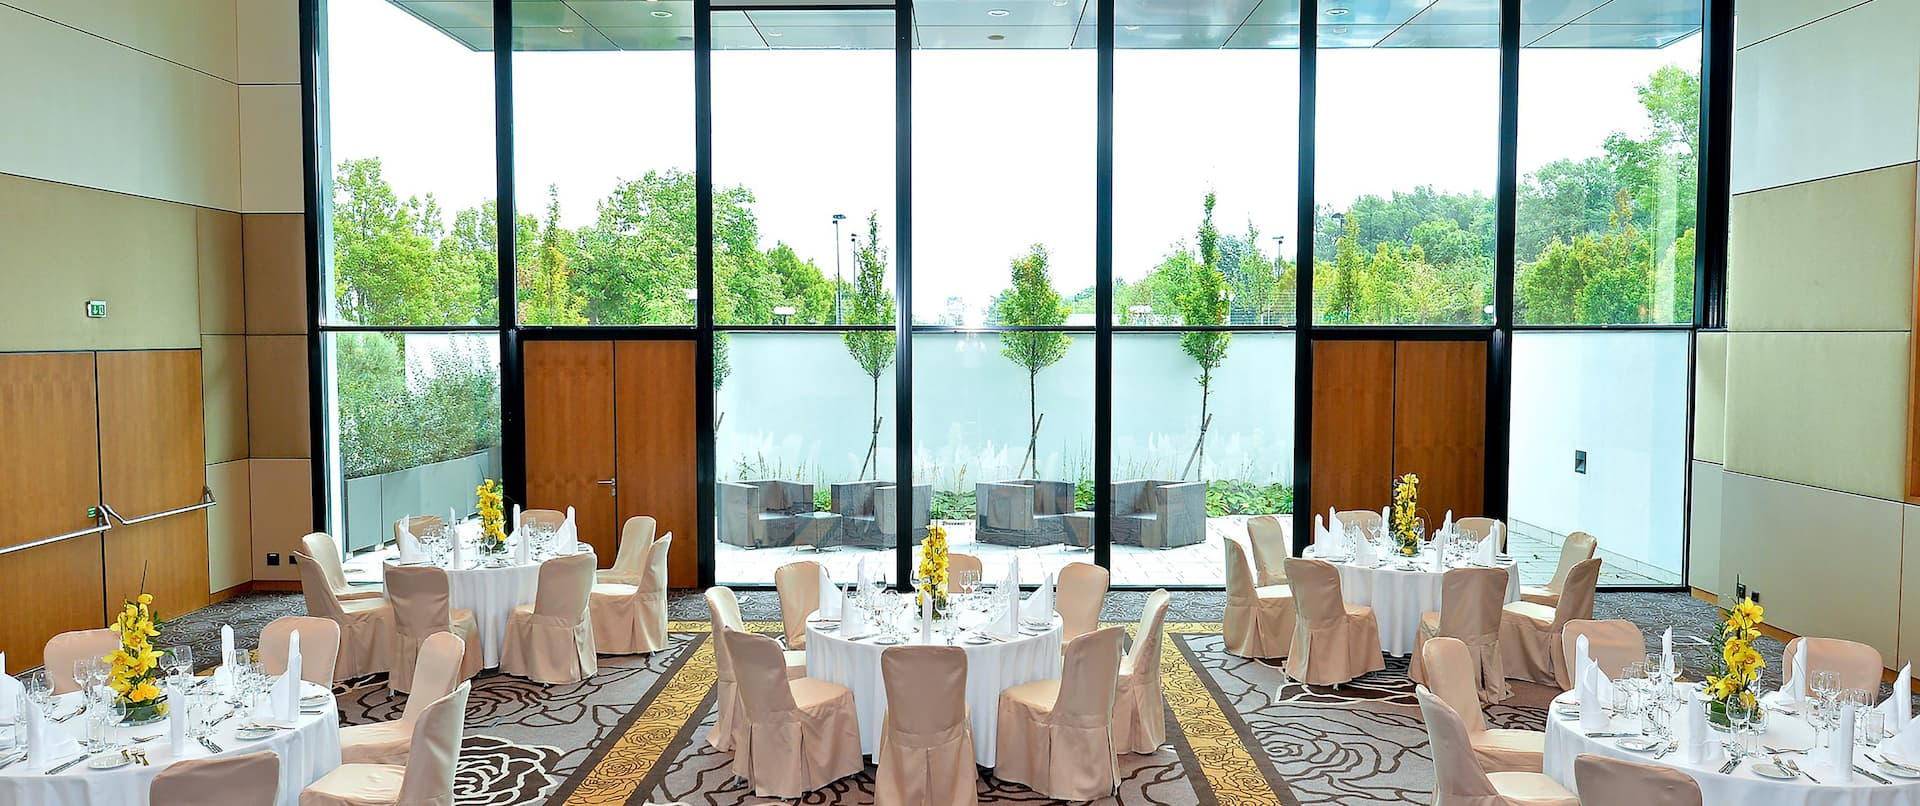 Meeting Room with Banquet Tables and Floor to Ceiling Windows